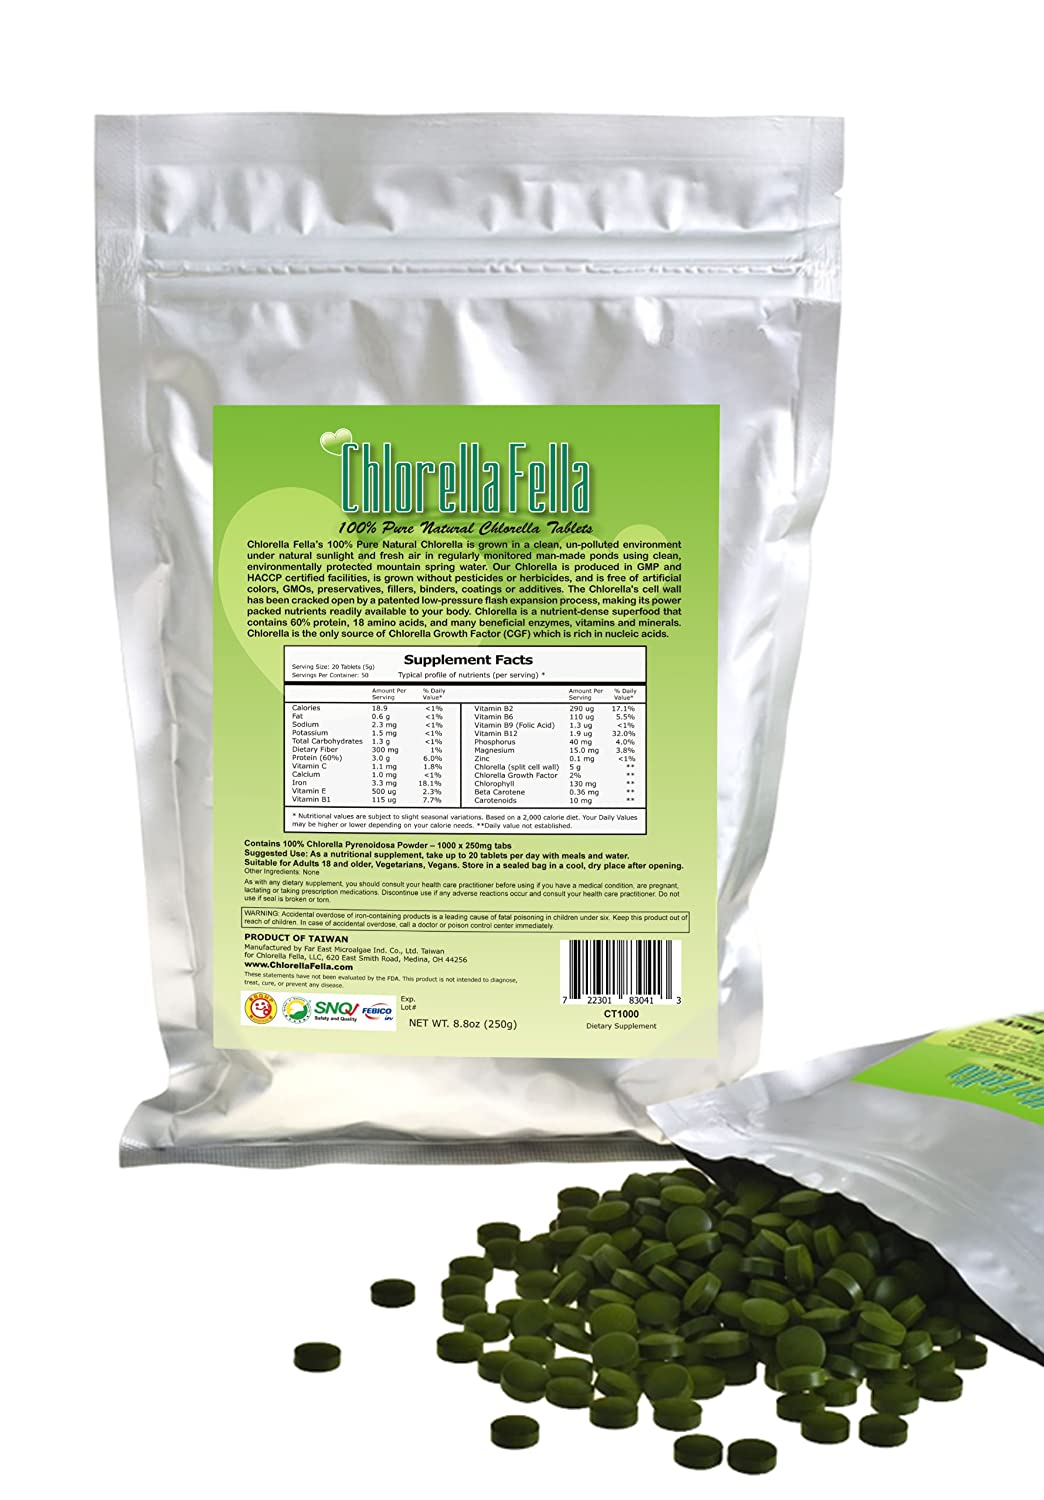 Chlorella Tablets 100 Pure Natural Taiwan Premier Quality Chlorella Tablets 1000 250mg Tabs Per Pack 8.8oz